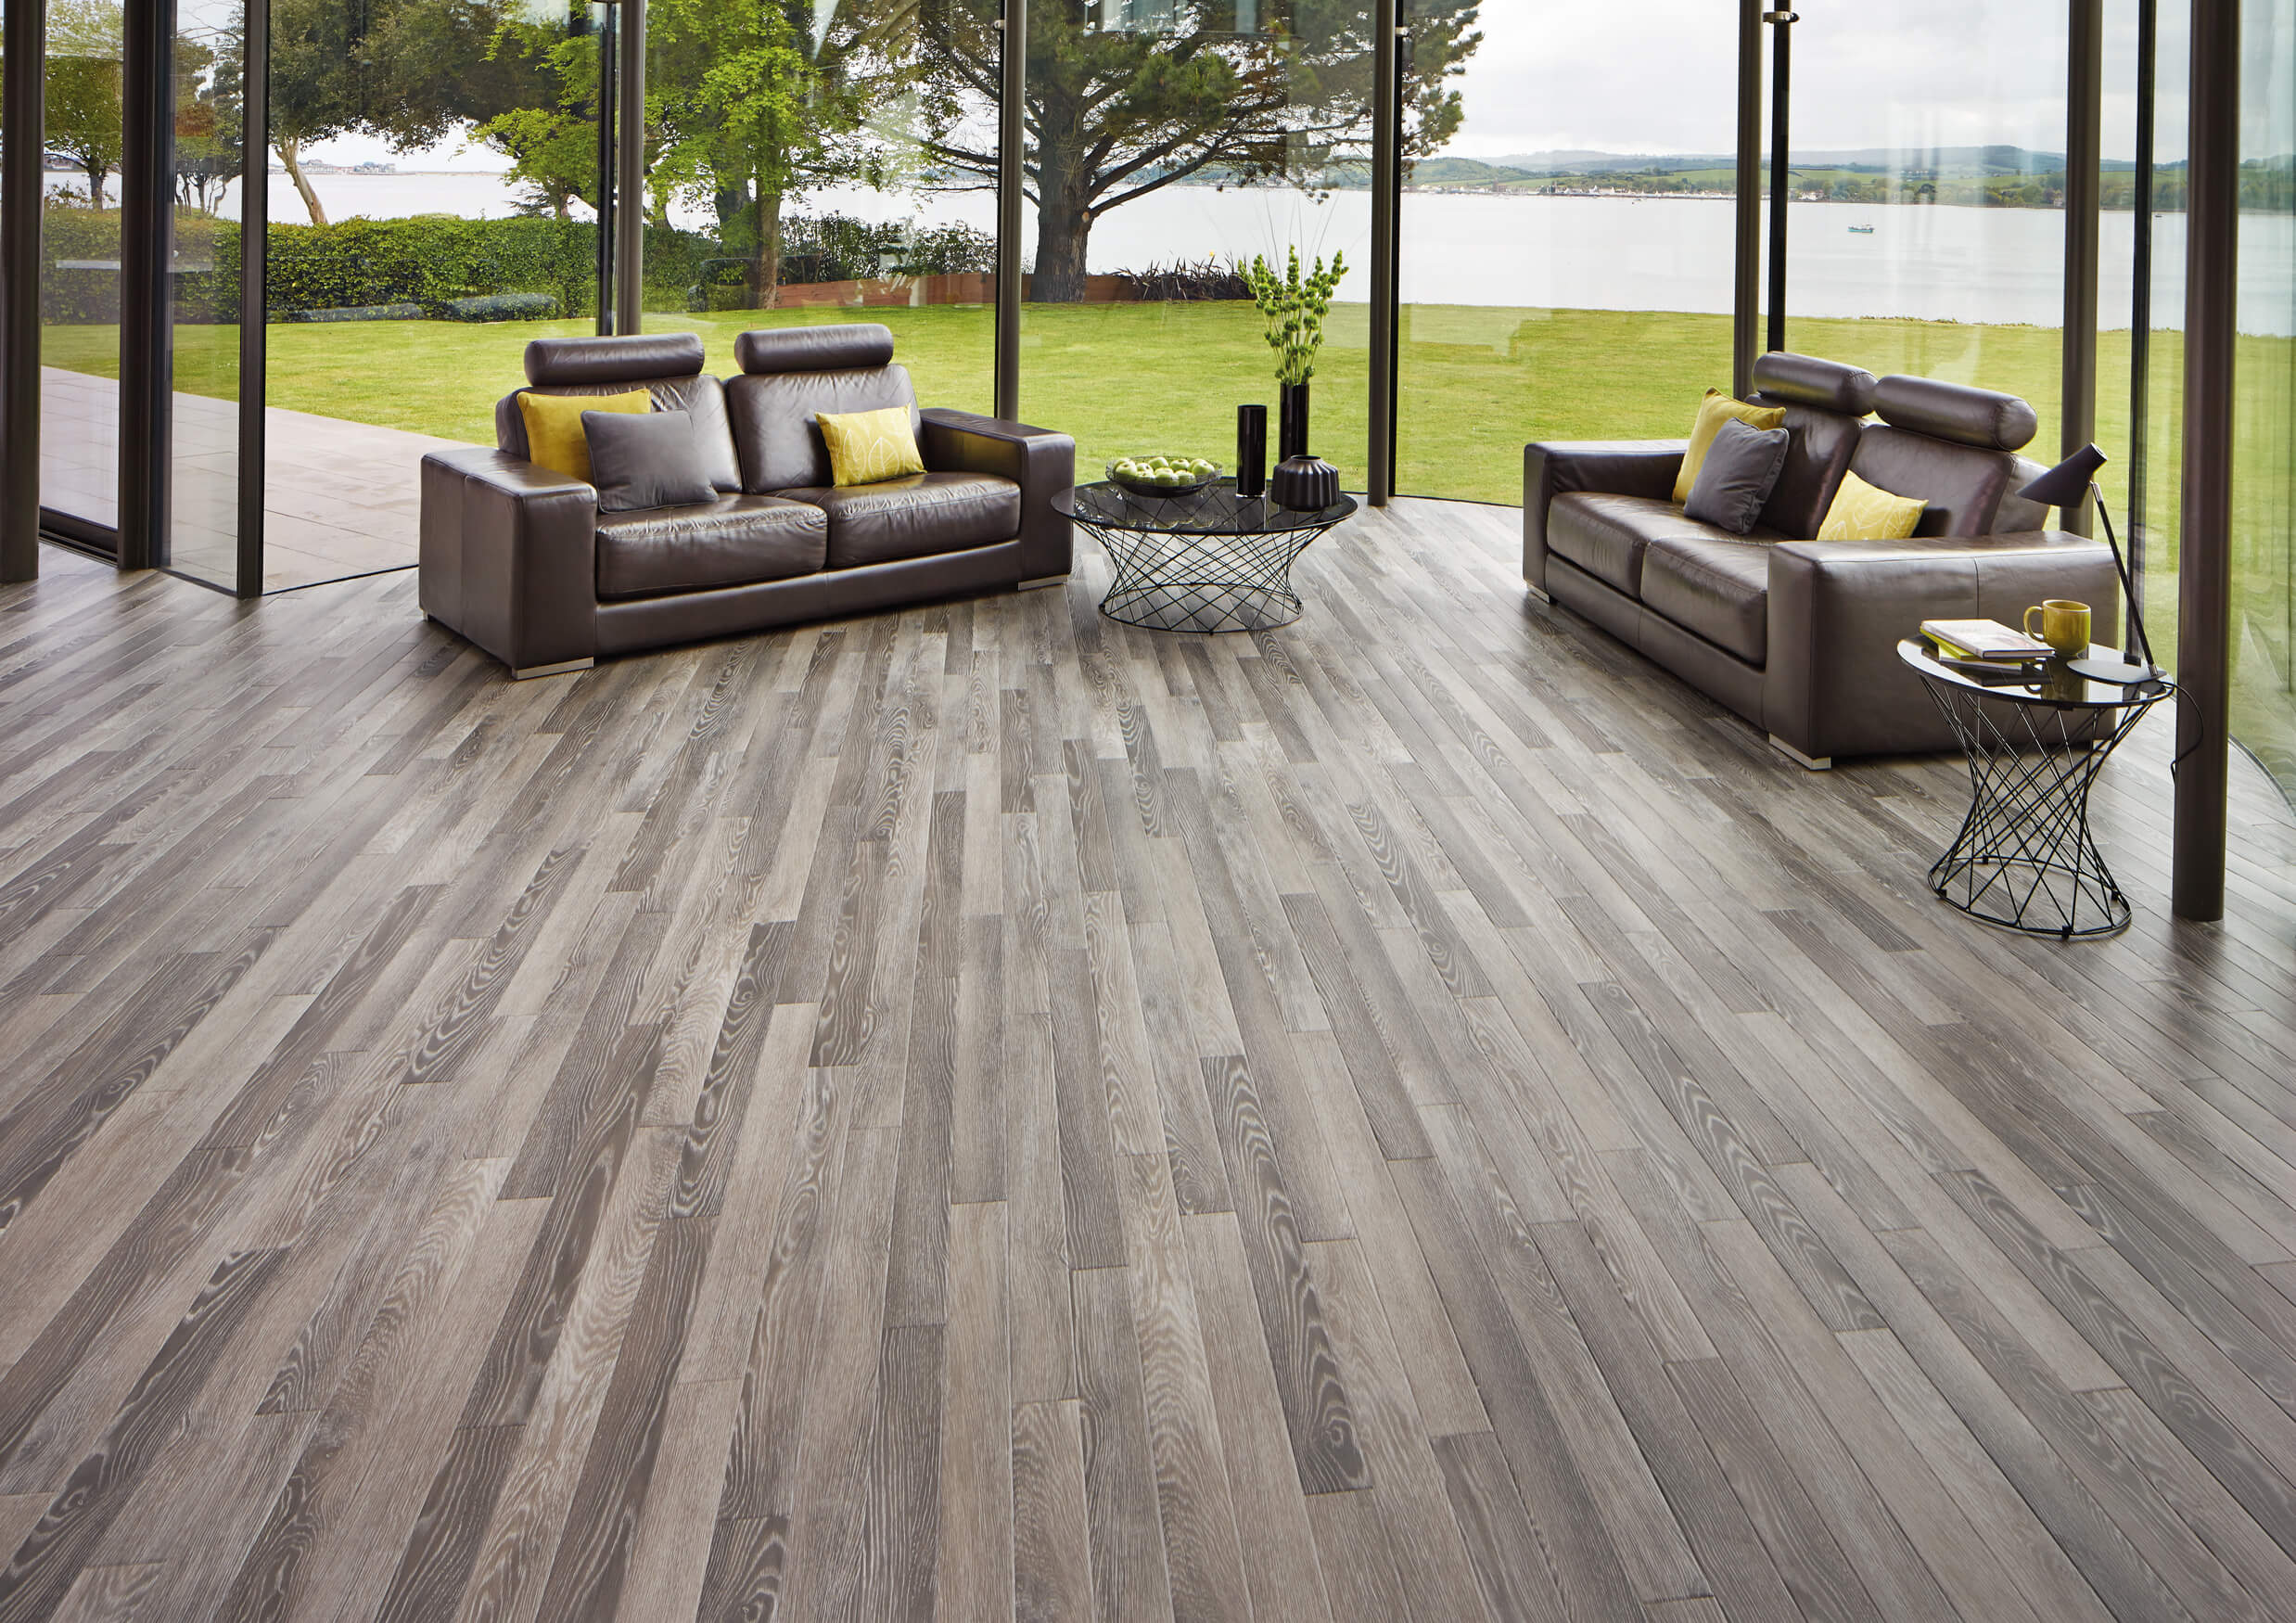 Flooring Suppliers Solihull Amp Birmingham Solihull